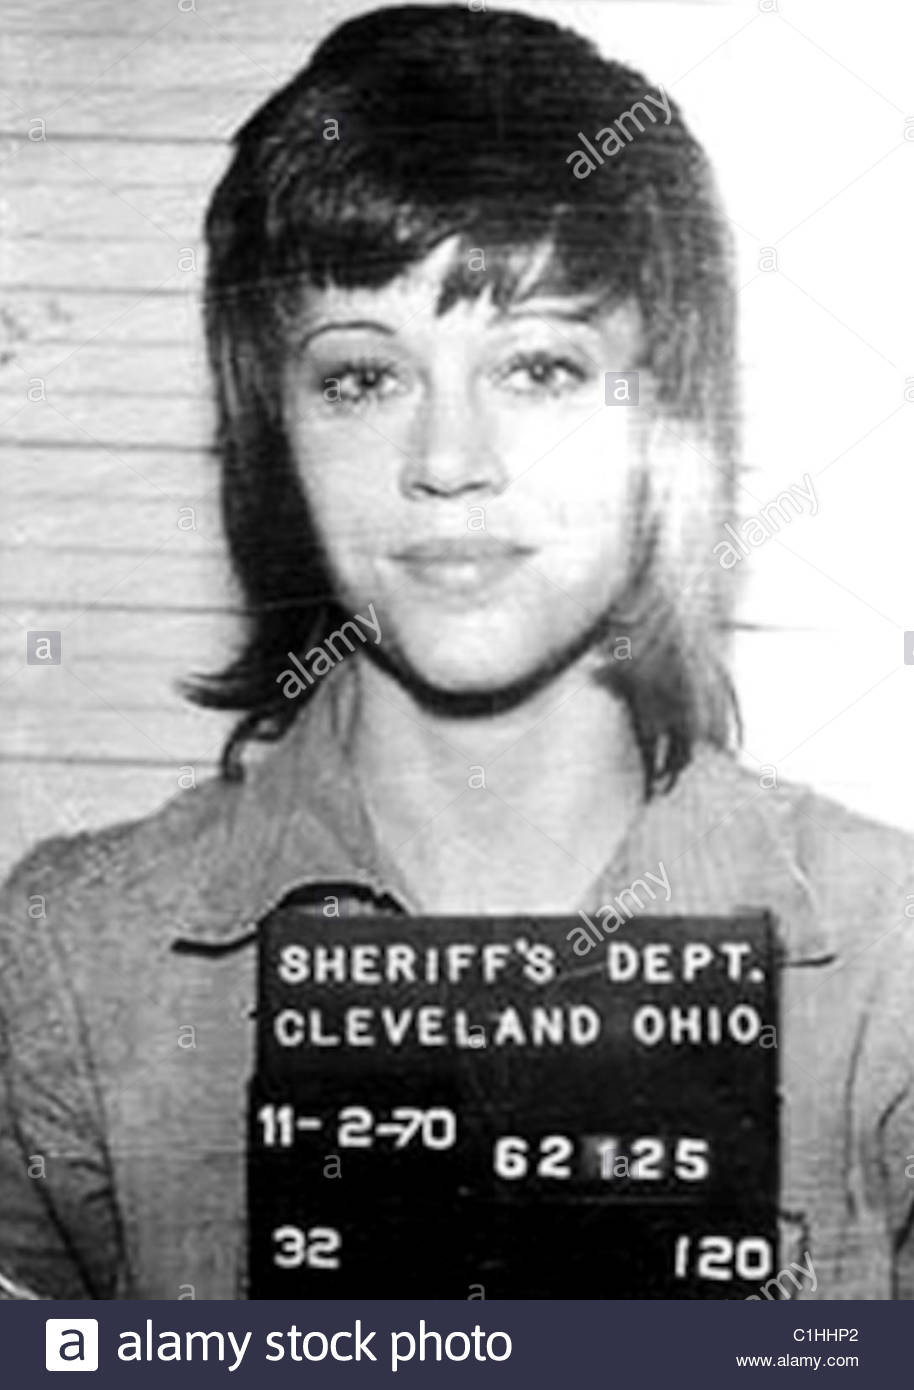 jane fonda mugshot stock photo royalty free image   alamy - jane fonda mugshot  stock photo